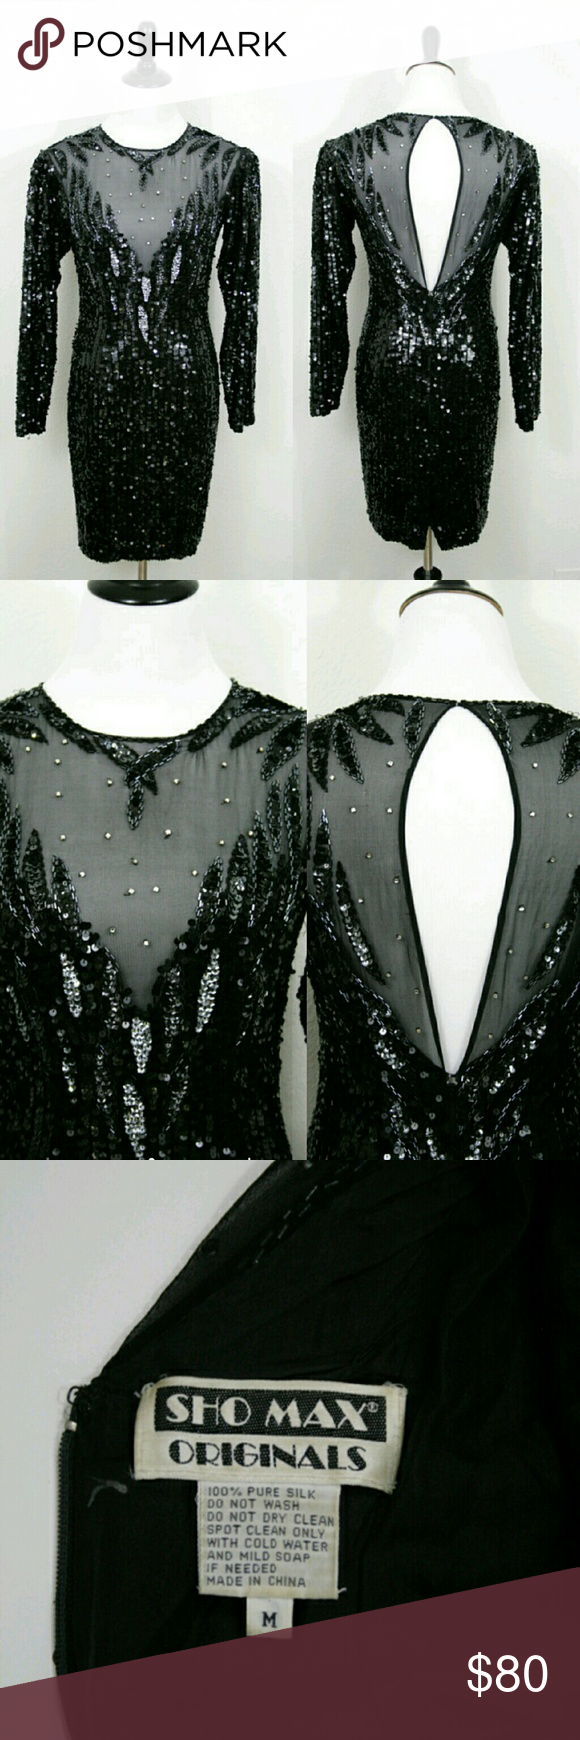 Vintage sequined little black dress sexy and sophisticated vintage